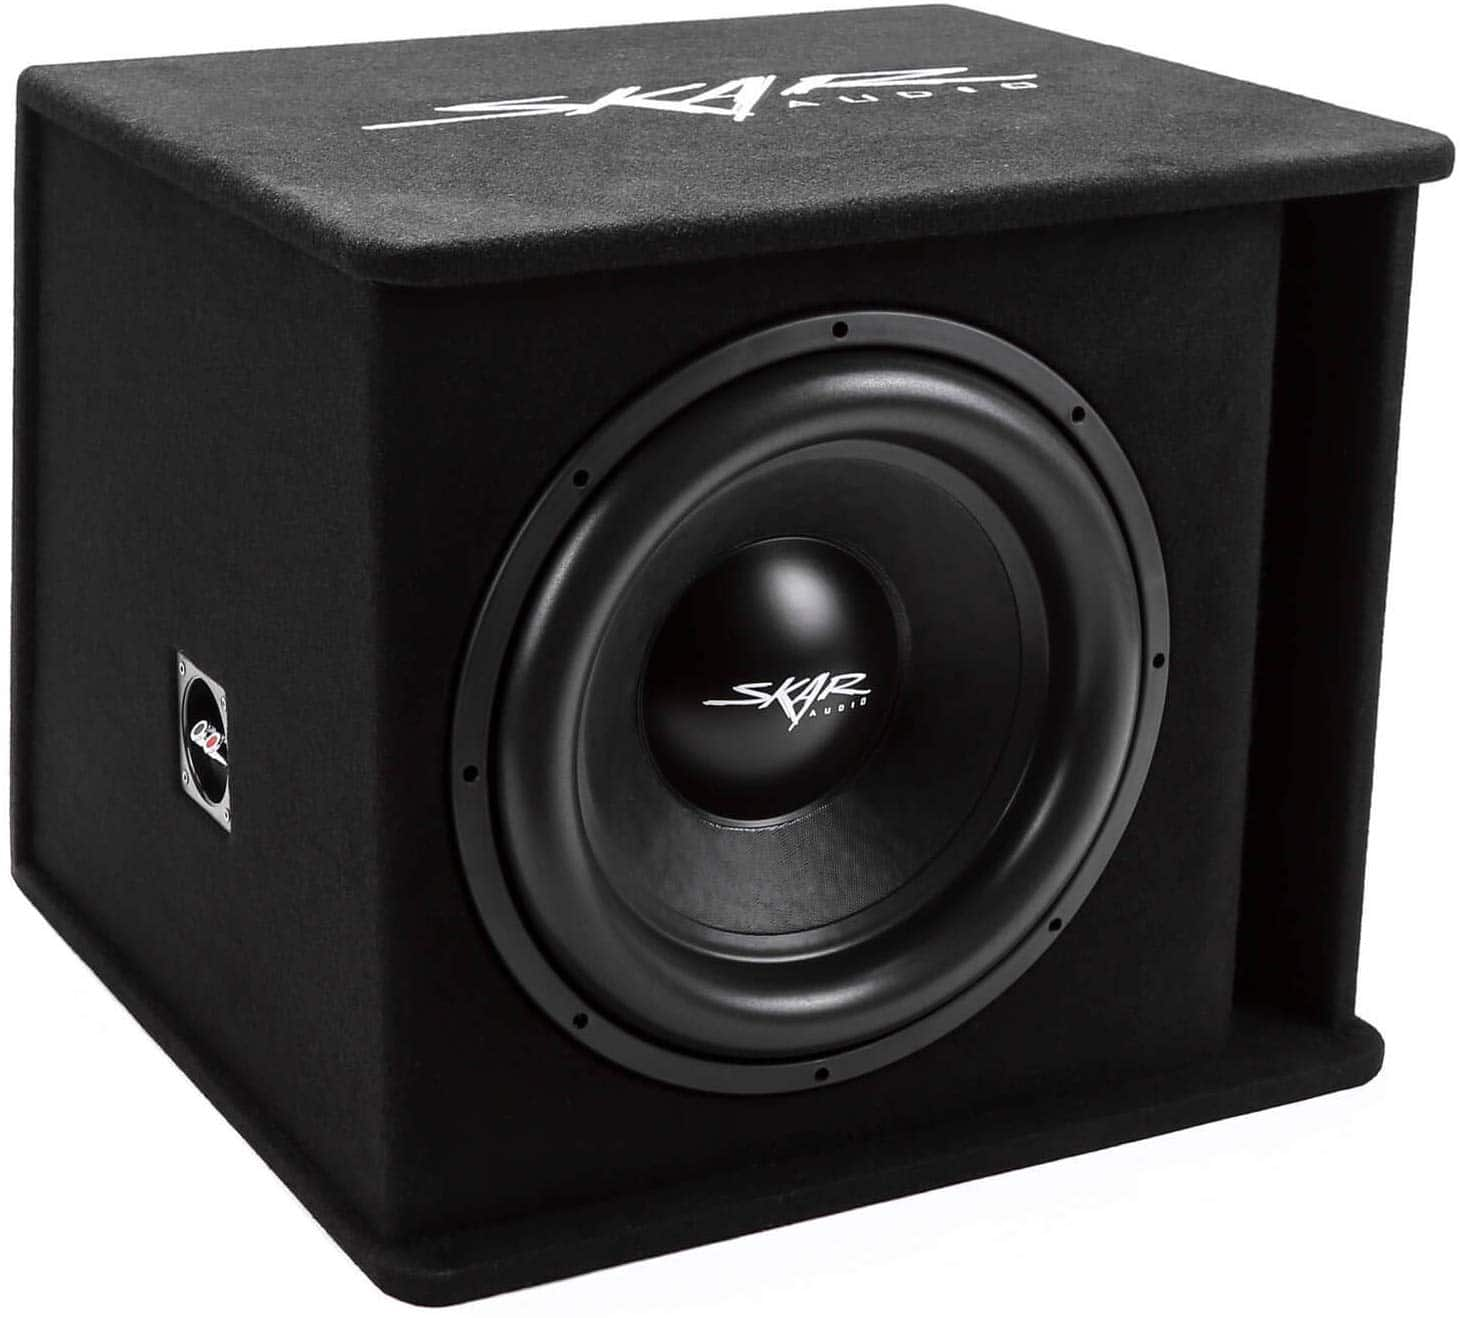 "best 15 inch subwoofer -  Skar Audio Single 15"" 1200W Loaded SDR Series Vented Subwoofer Enclosure"